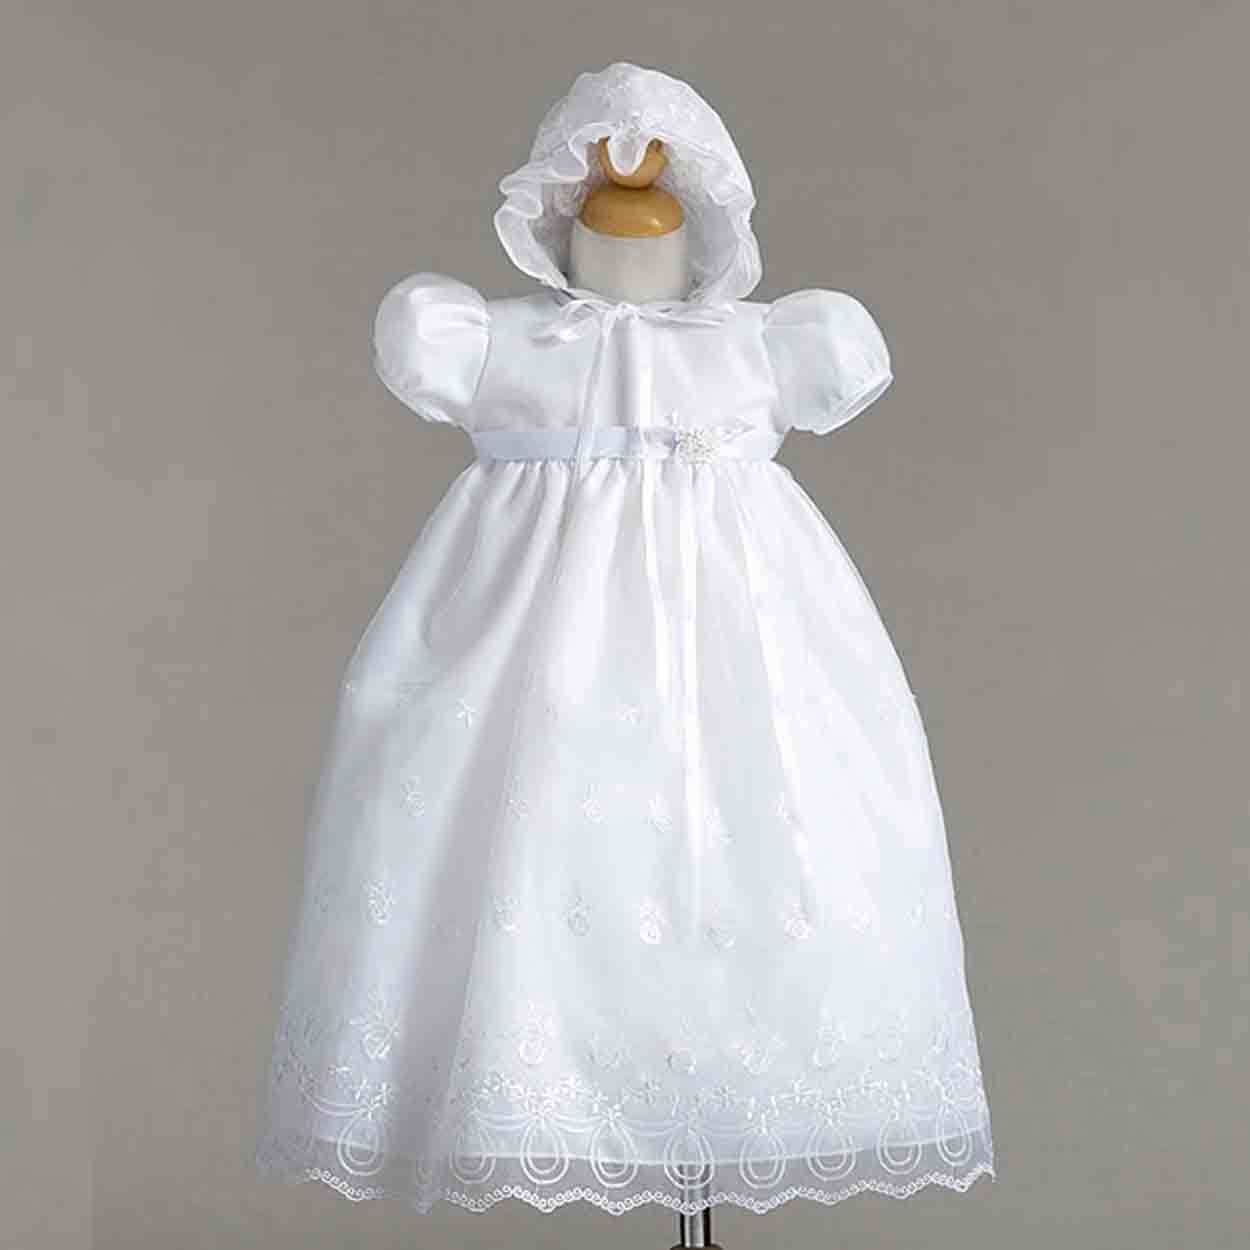 Image 0 of Gorgeous Lace Baby Girl Christening Dress Hat Set, Crayon Kids USA - White - Pol